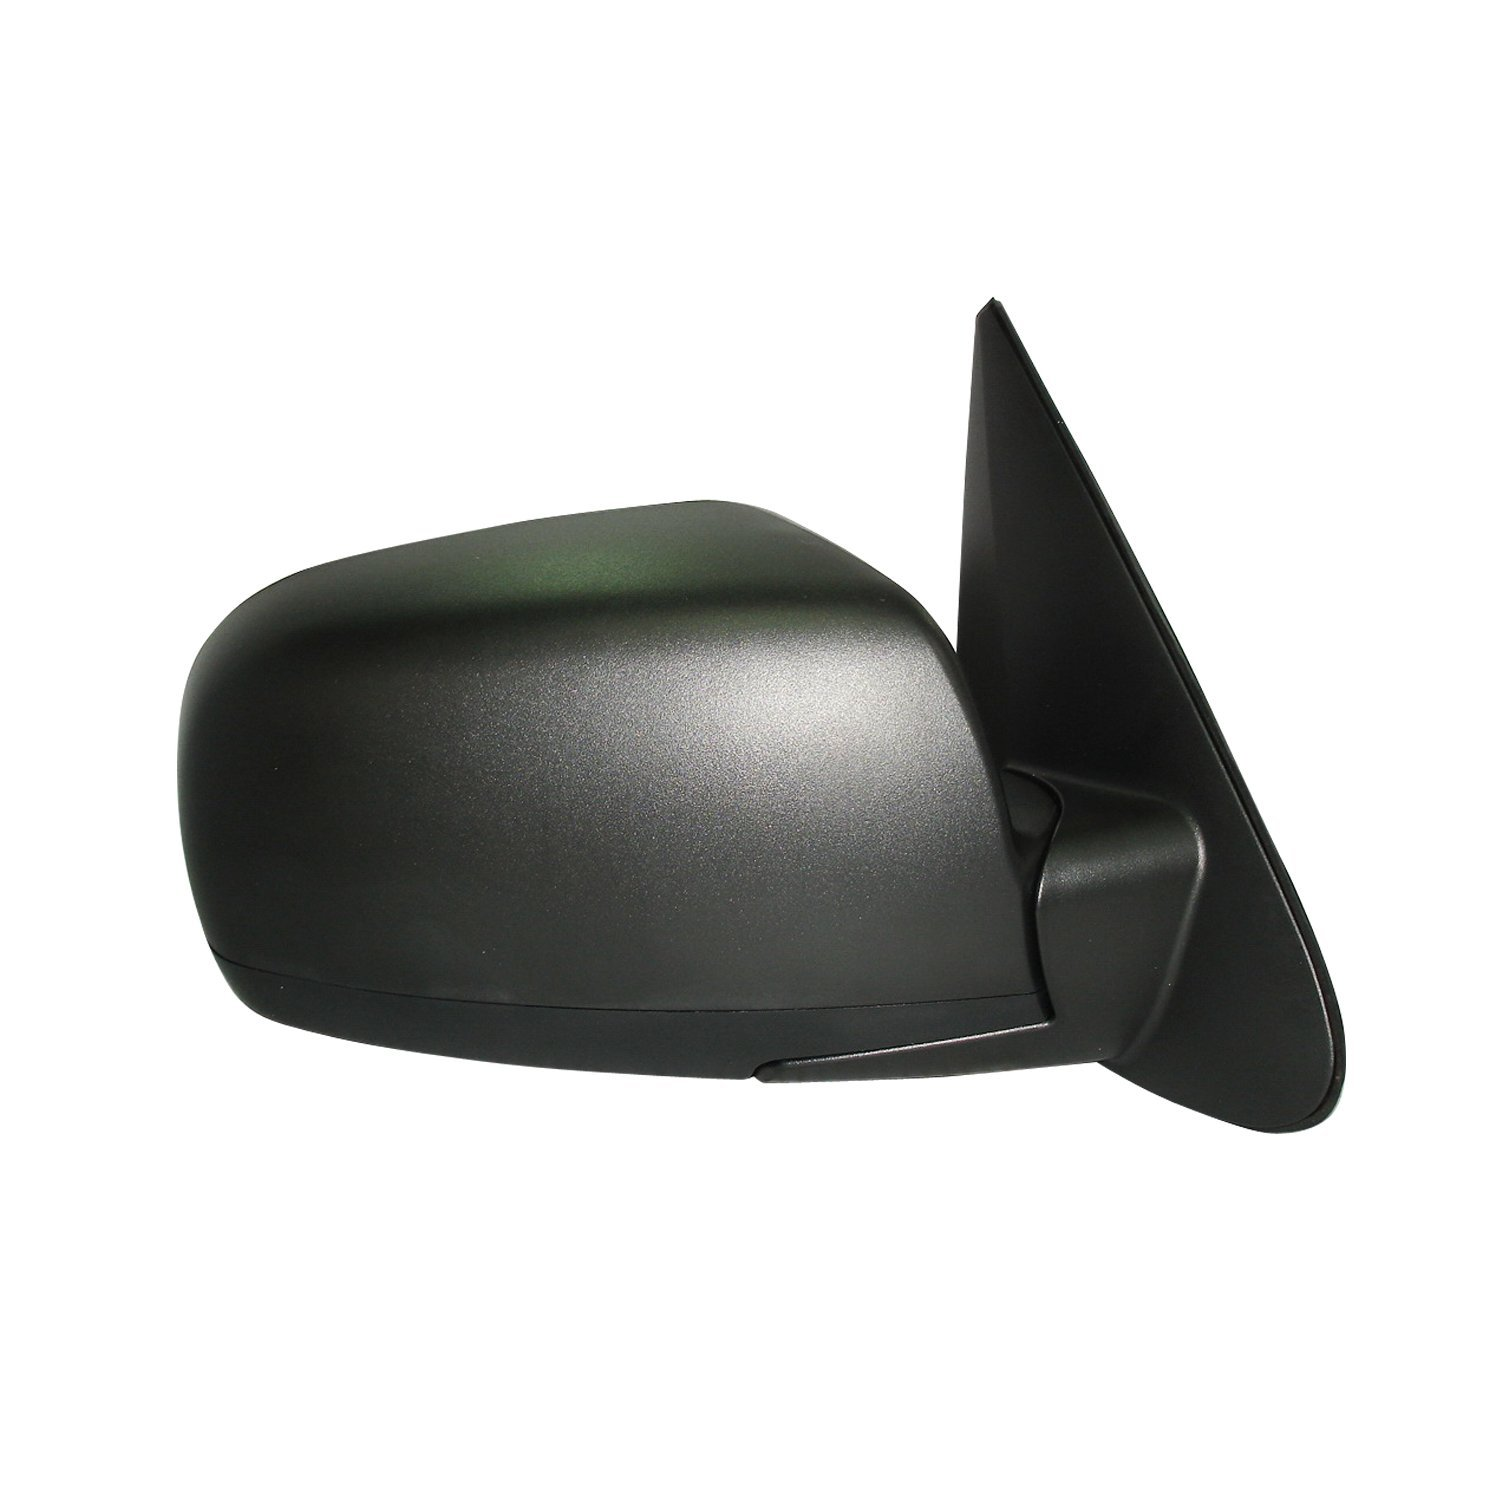 Tyc 7750031 Hyundai Santa Fe Non Heated Power Seats In A 2012 Elantra Diagram Replacement Passenger Side Mirror Automotive